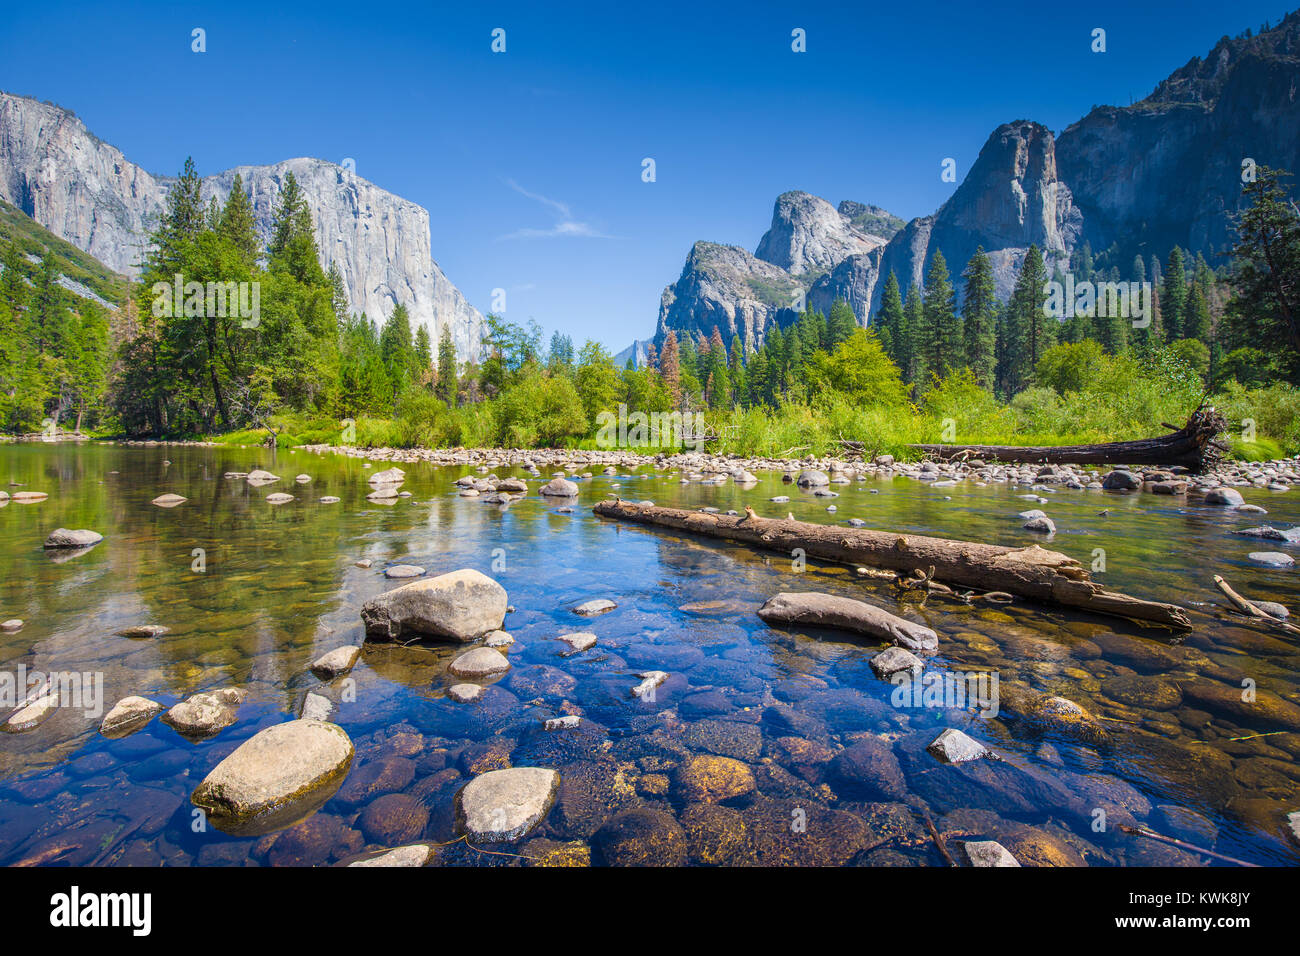 Classic view of scenic Yosemite Valley with famous El Capitan rock climbing summit and idyllic Merced river on a Stock Photo